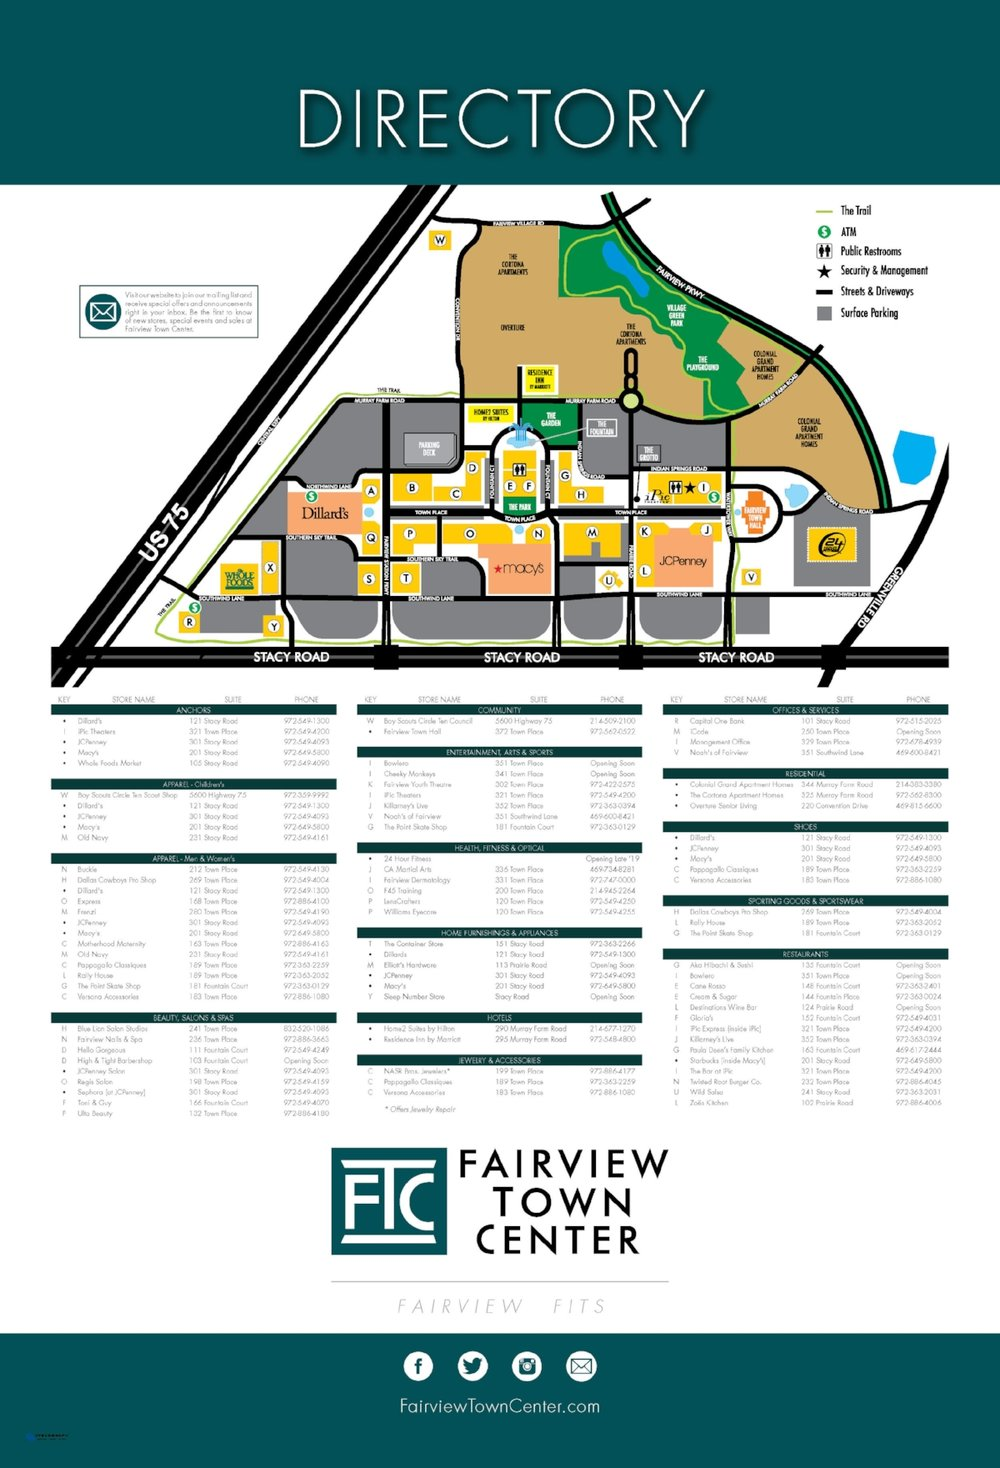 fairview direcotry map store listing backlit display deisgn by cybergraph.jpg